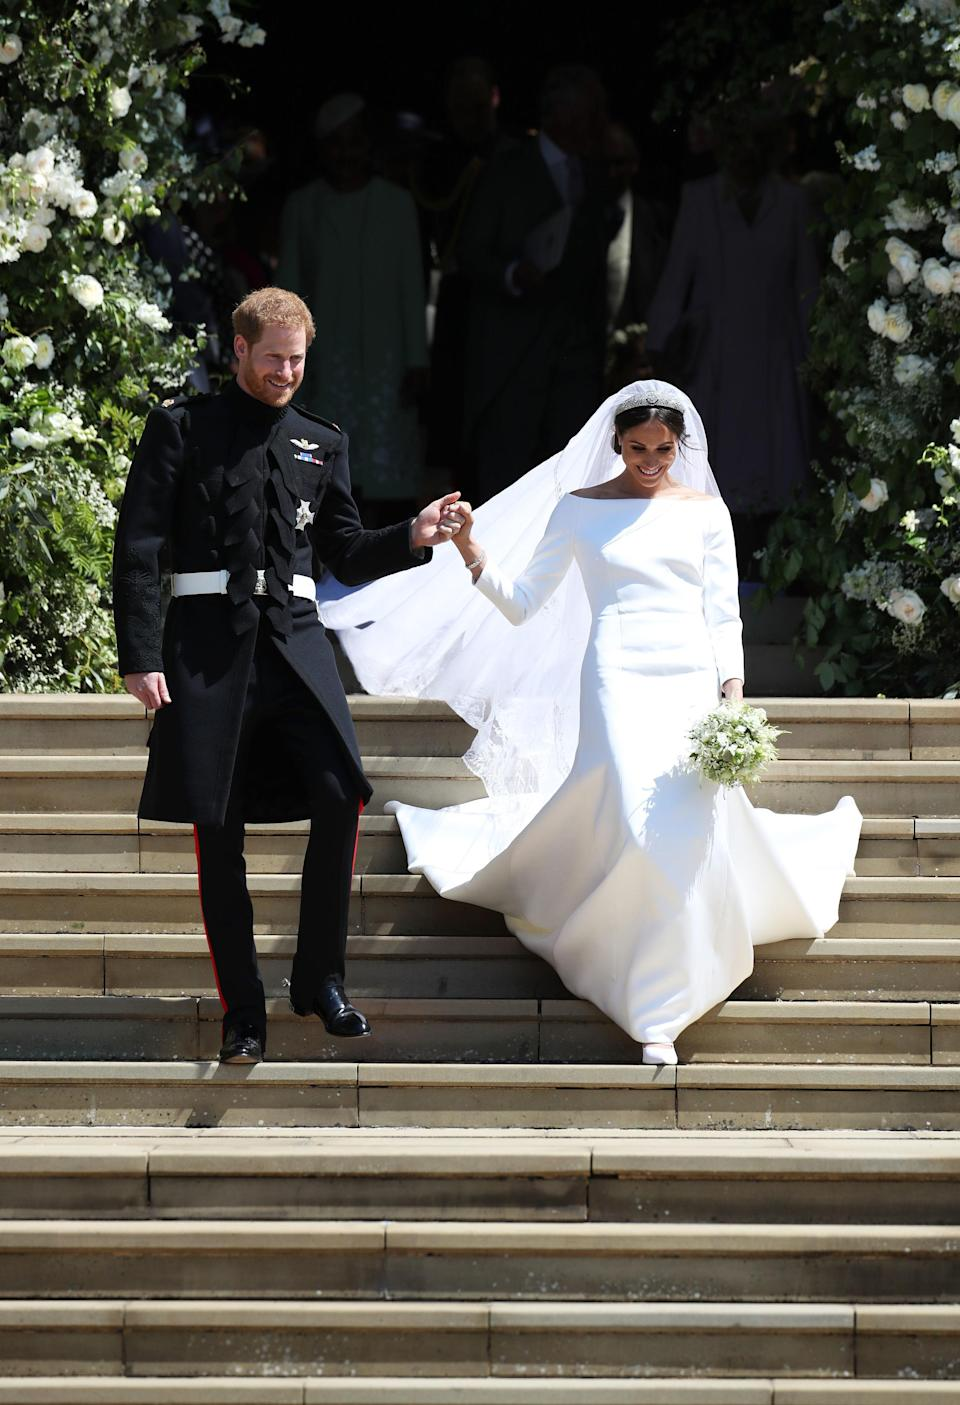 The 92-year-old Monarch is said to be a 'stickler for the rules' and also was quite surprised when Meghan wore a crisp white, long-sleeved Givenchy gown on her wedding day – due to the fact that the Duchess has been married once before. Photo: Getty Images